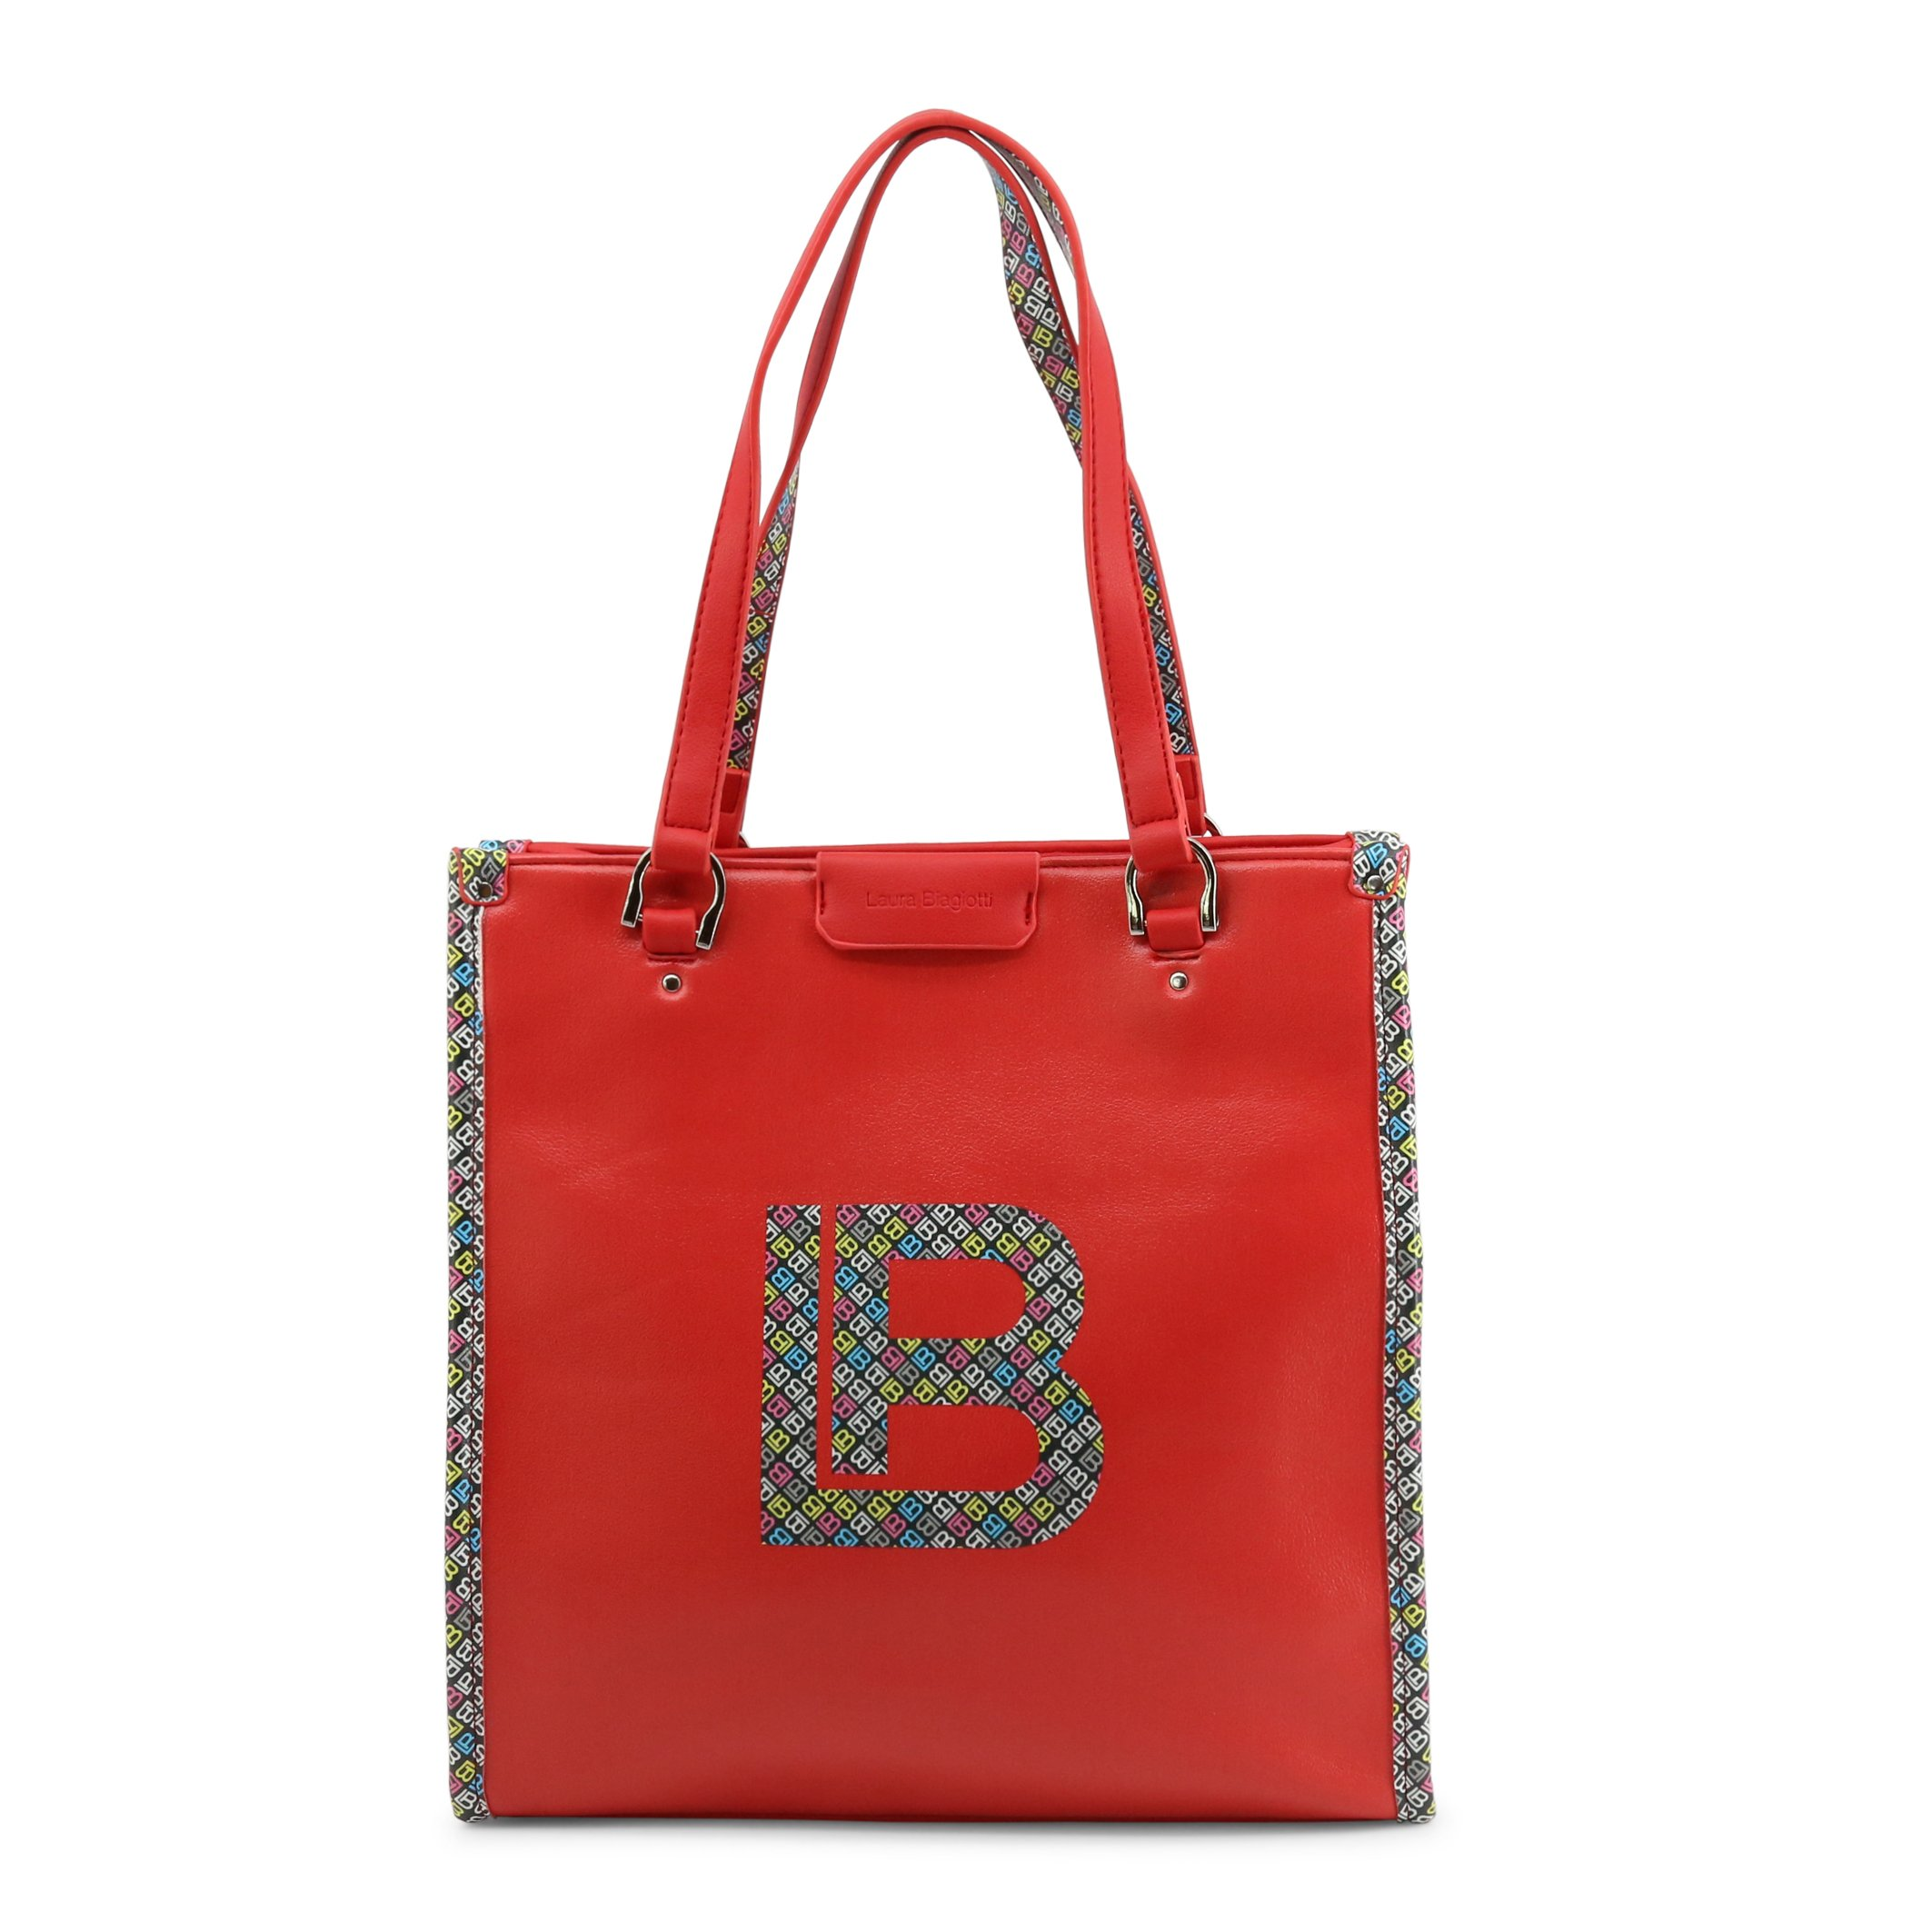 Laura Biagiotti Women's Shoulder Bag Various Colours Milla_108-1 - red NOSIZE